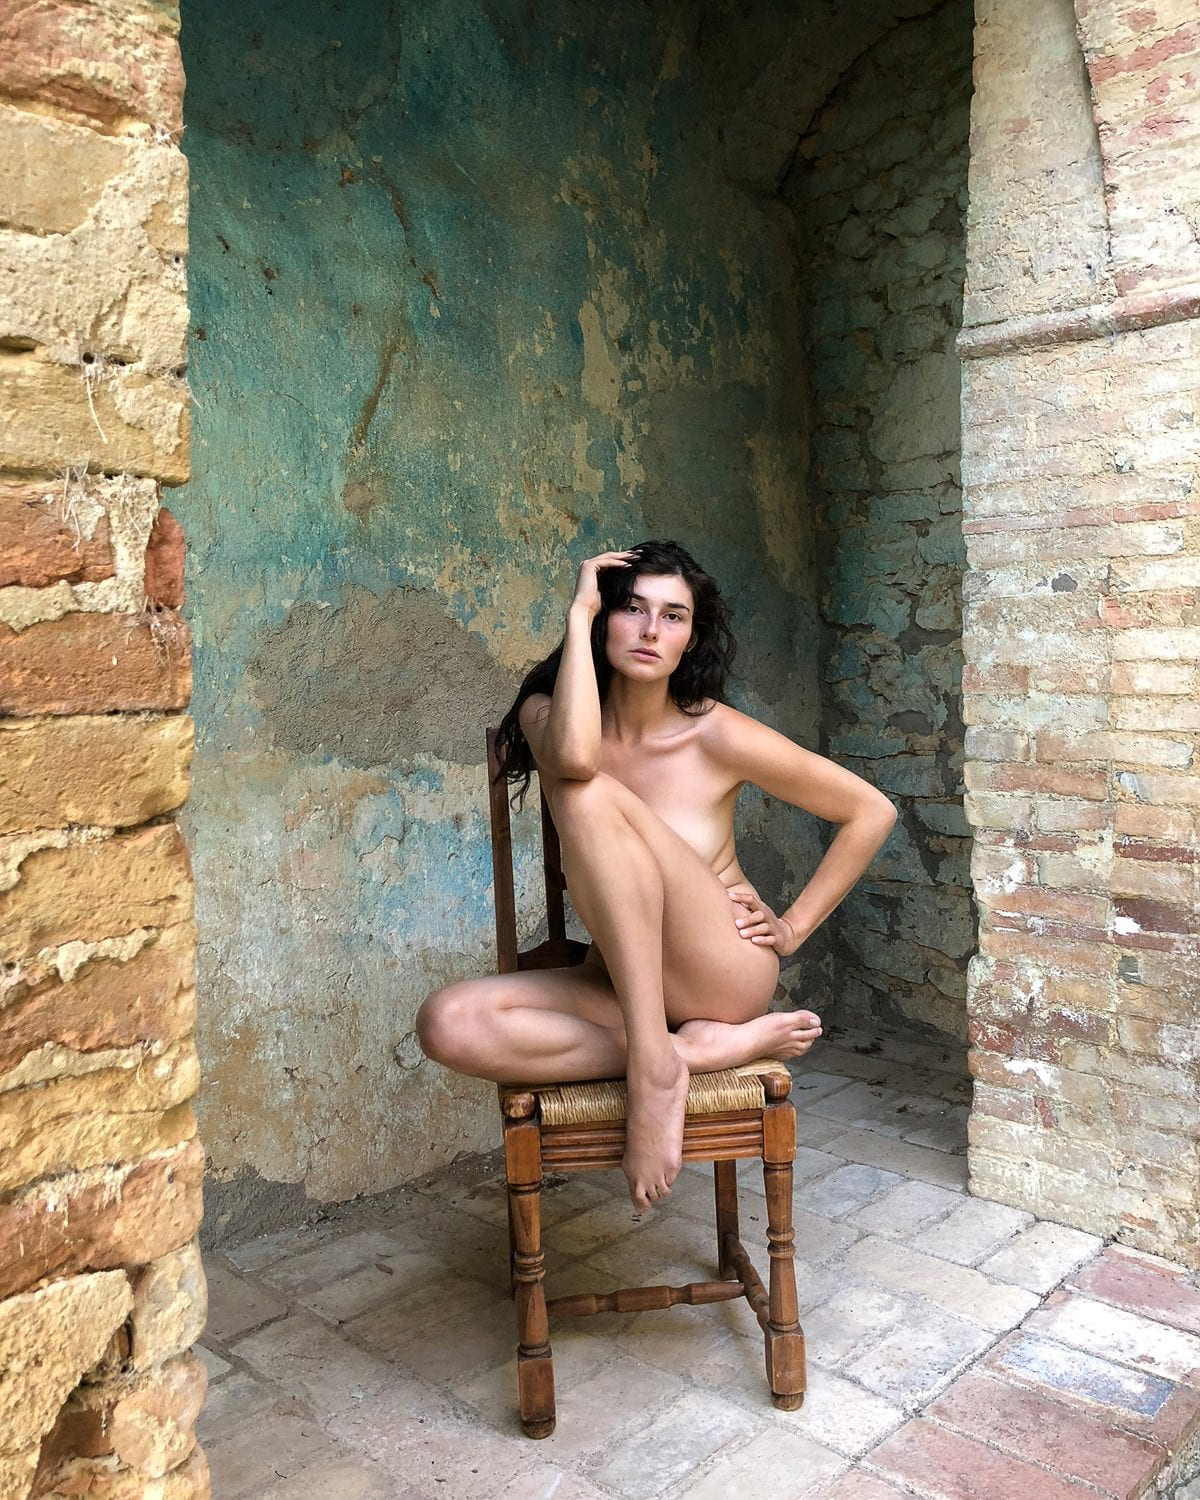 Fine Art Nude Photography Workshop from The Image Flow